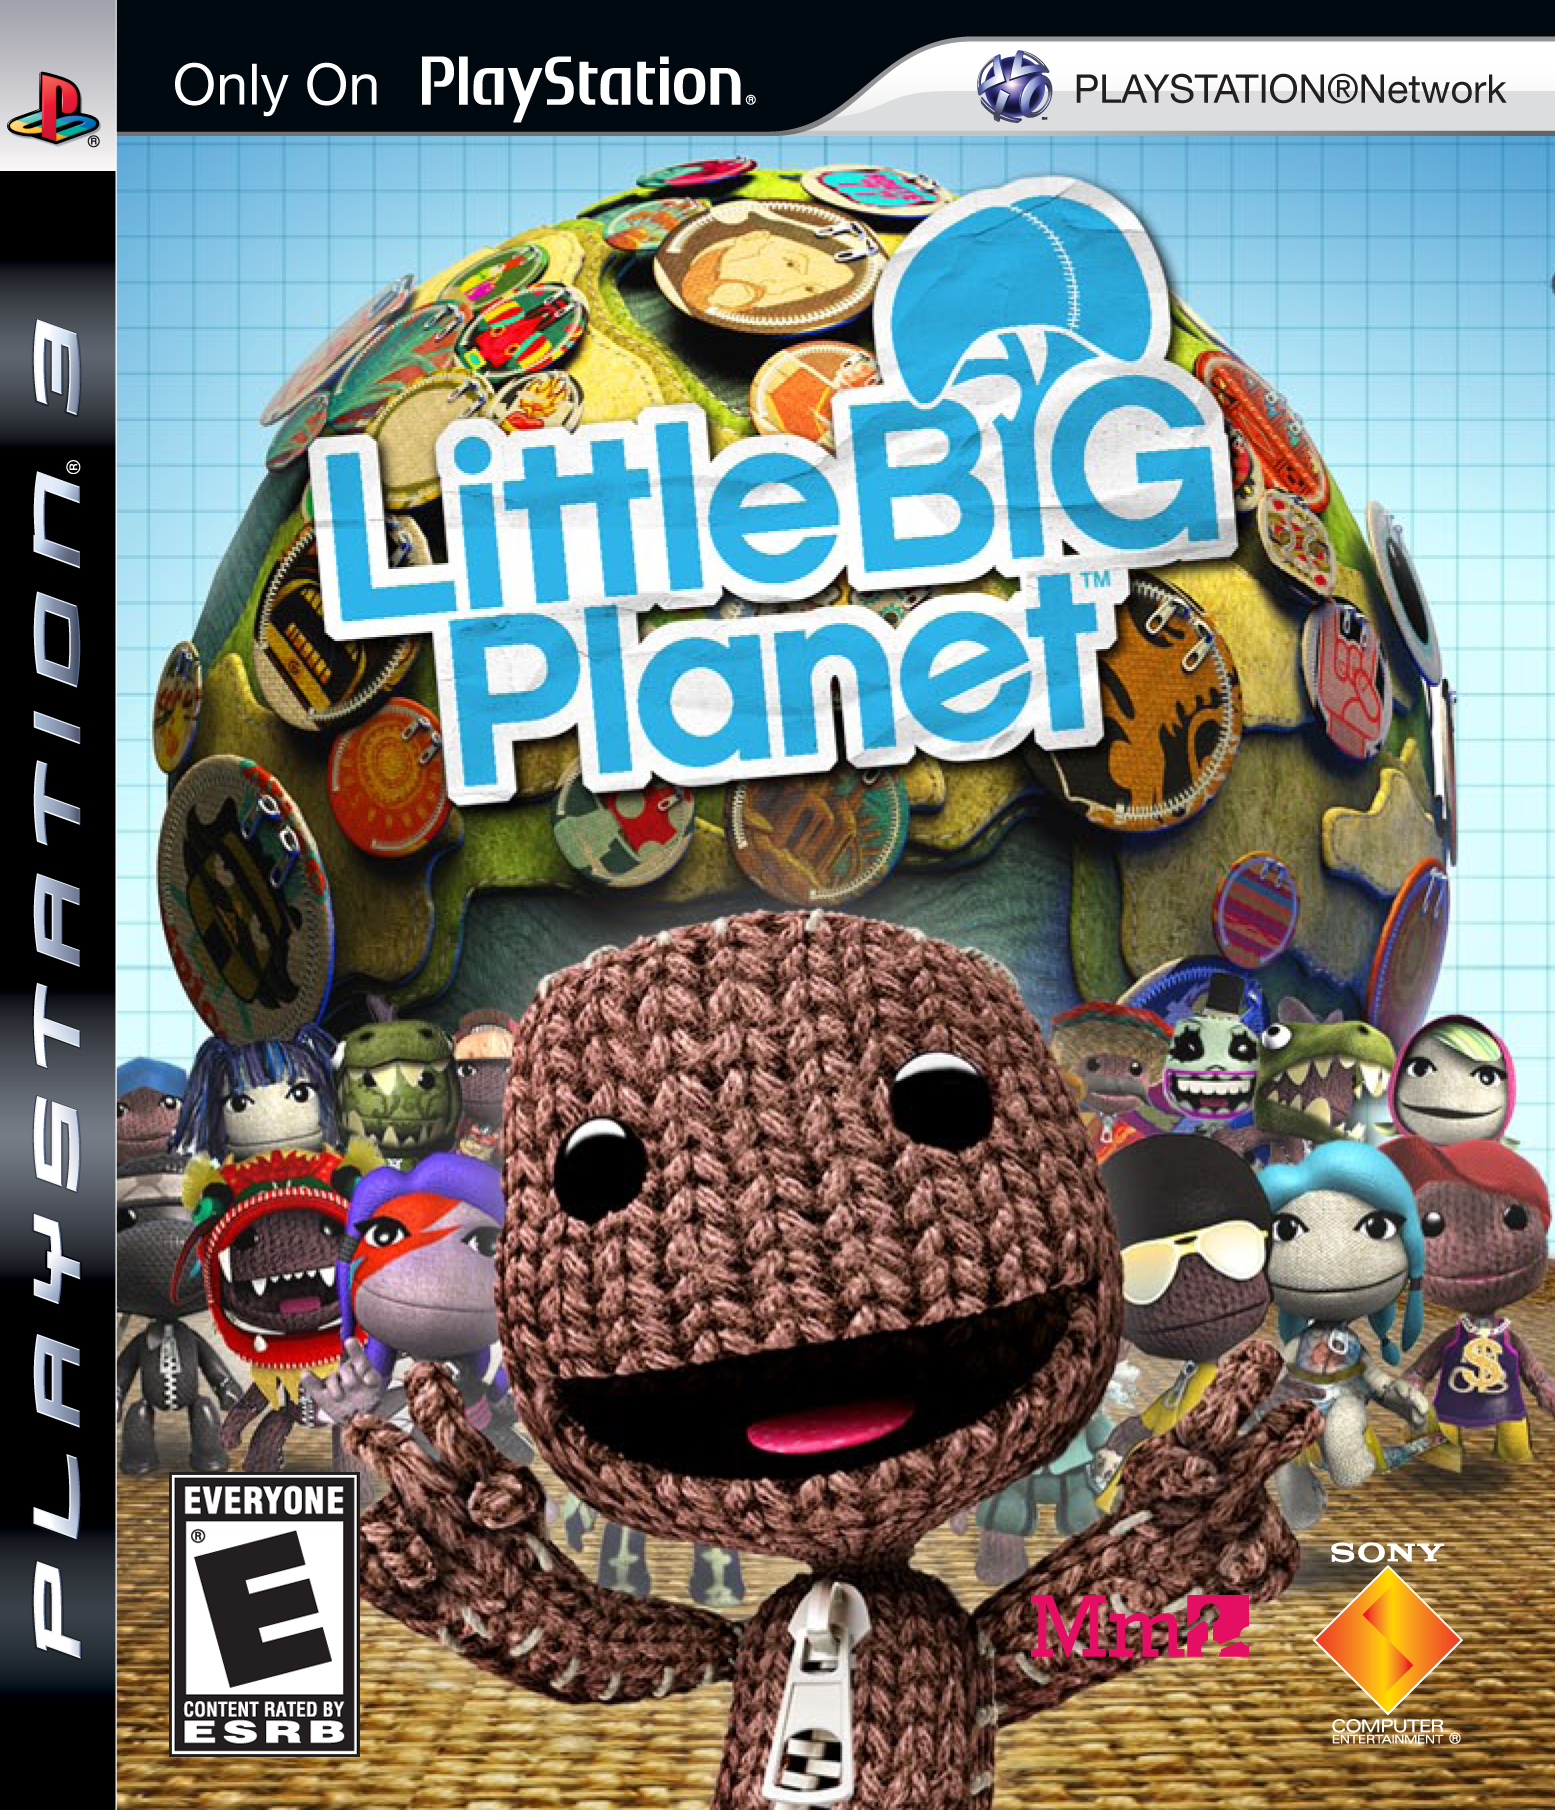 More LittleBigPlanet Concept Art | GoingSony